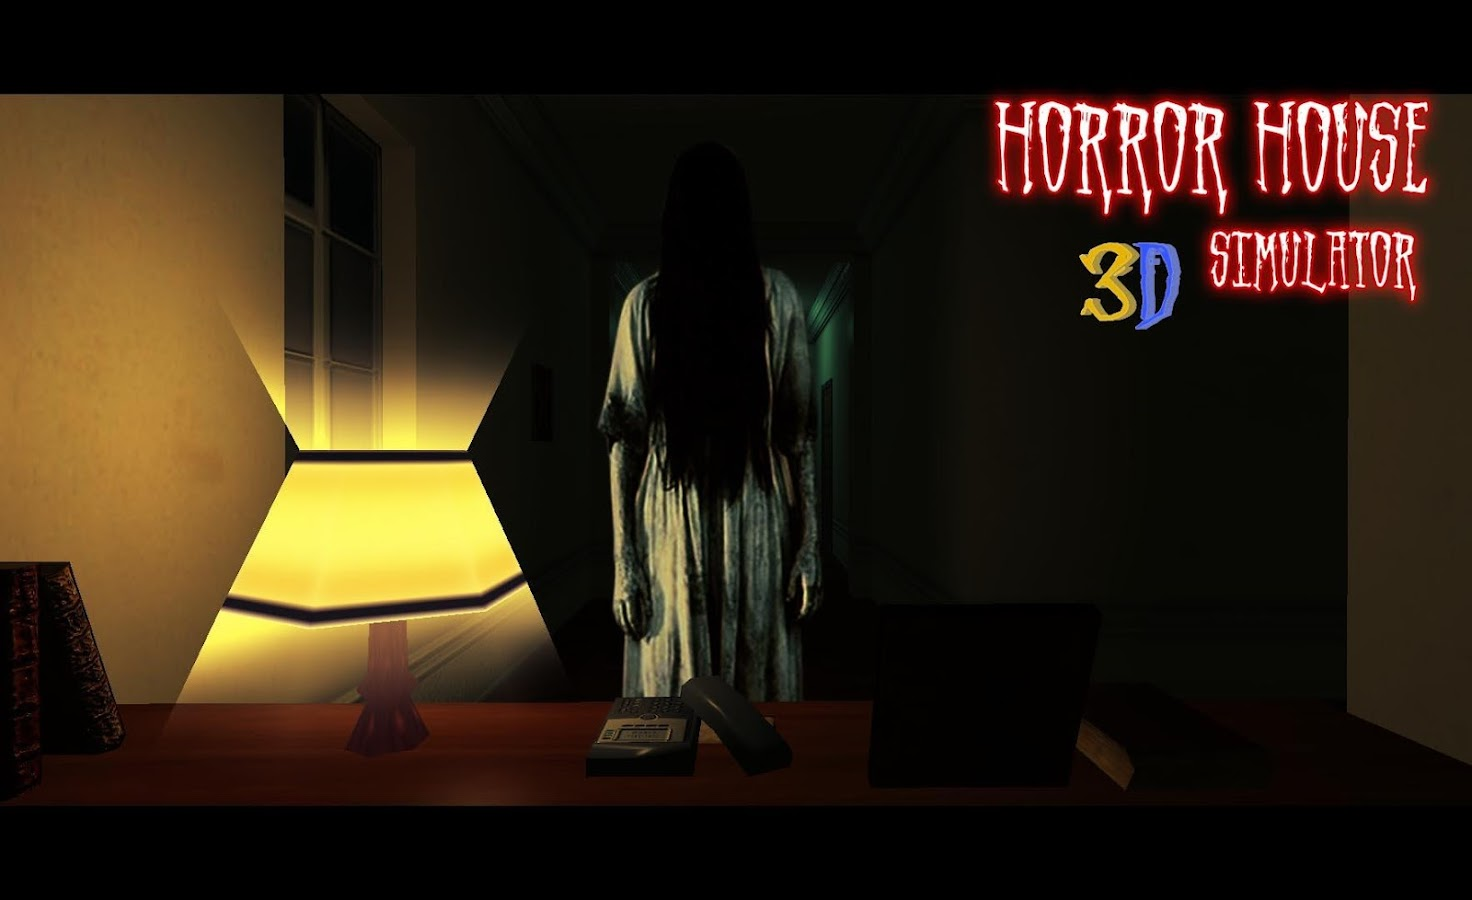 Curse breakers halloween horror mansion walkthrough solution -  Horror House Simulator 3d 1 9 Screenshot 7